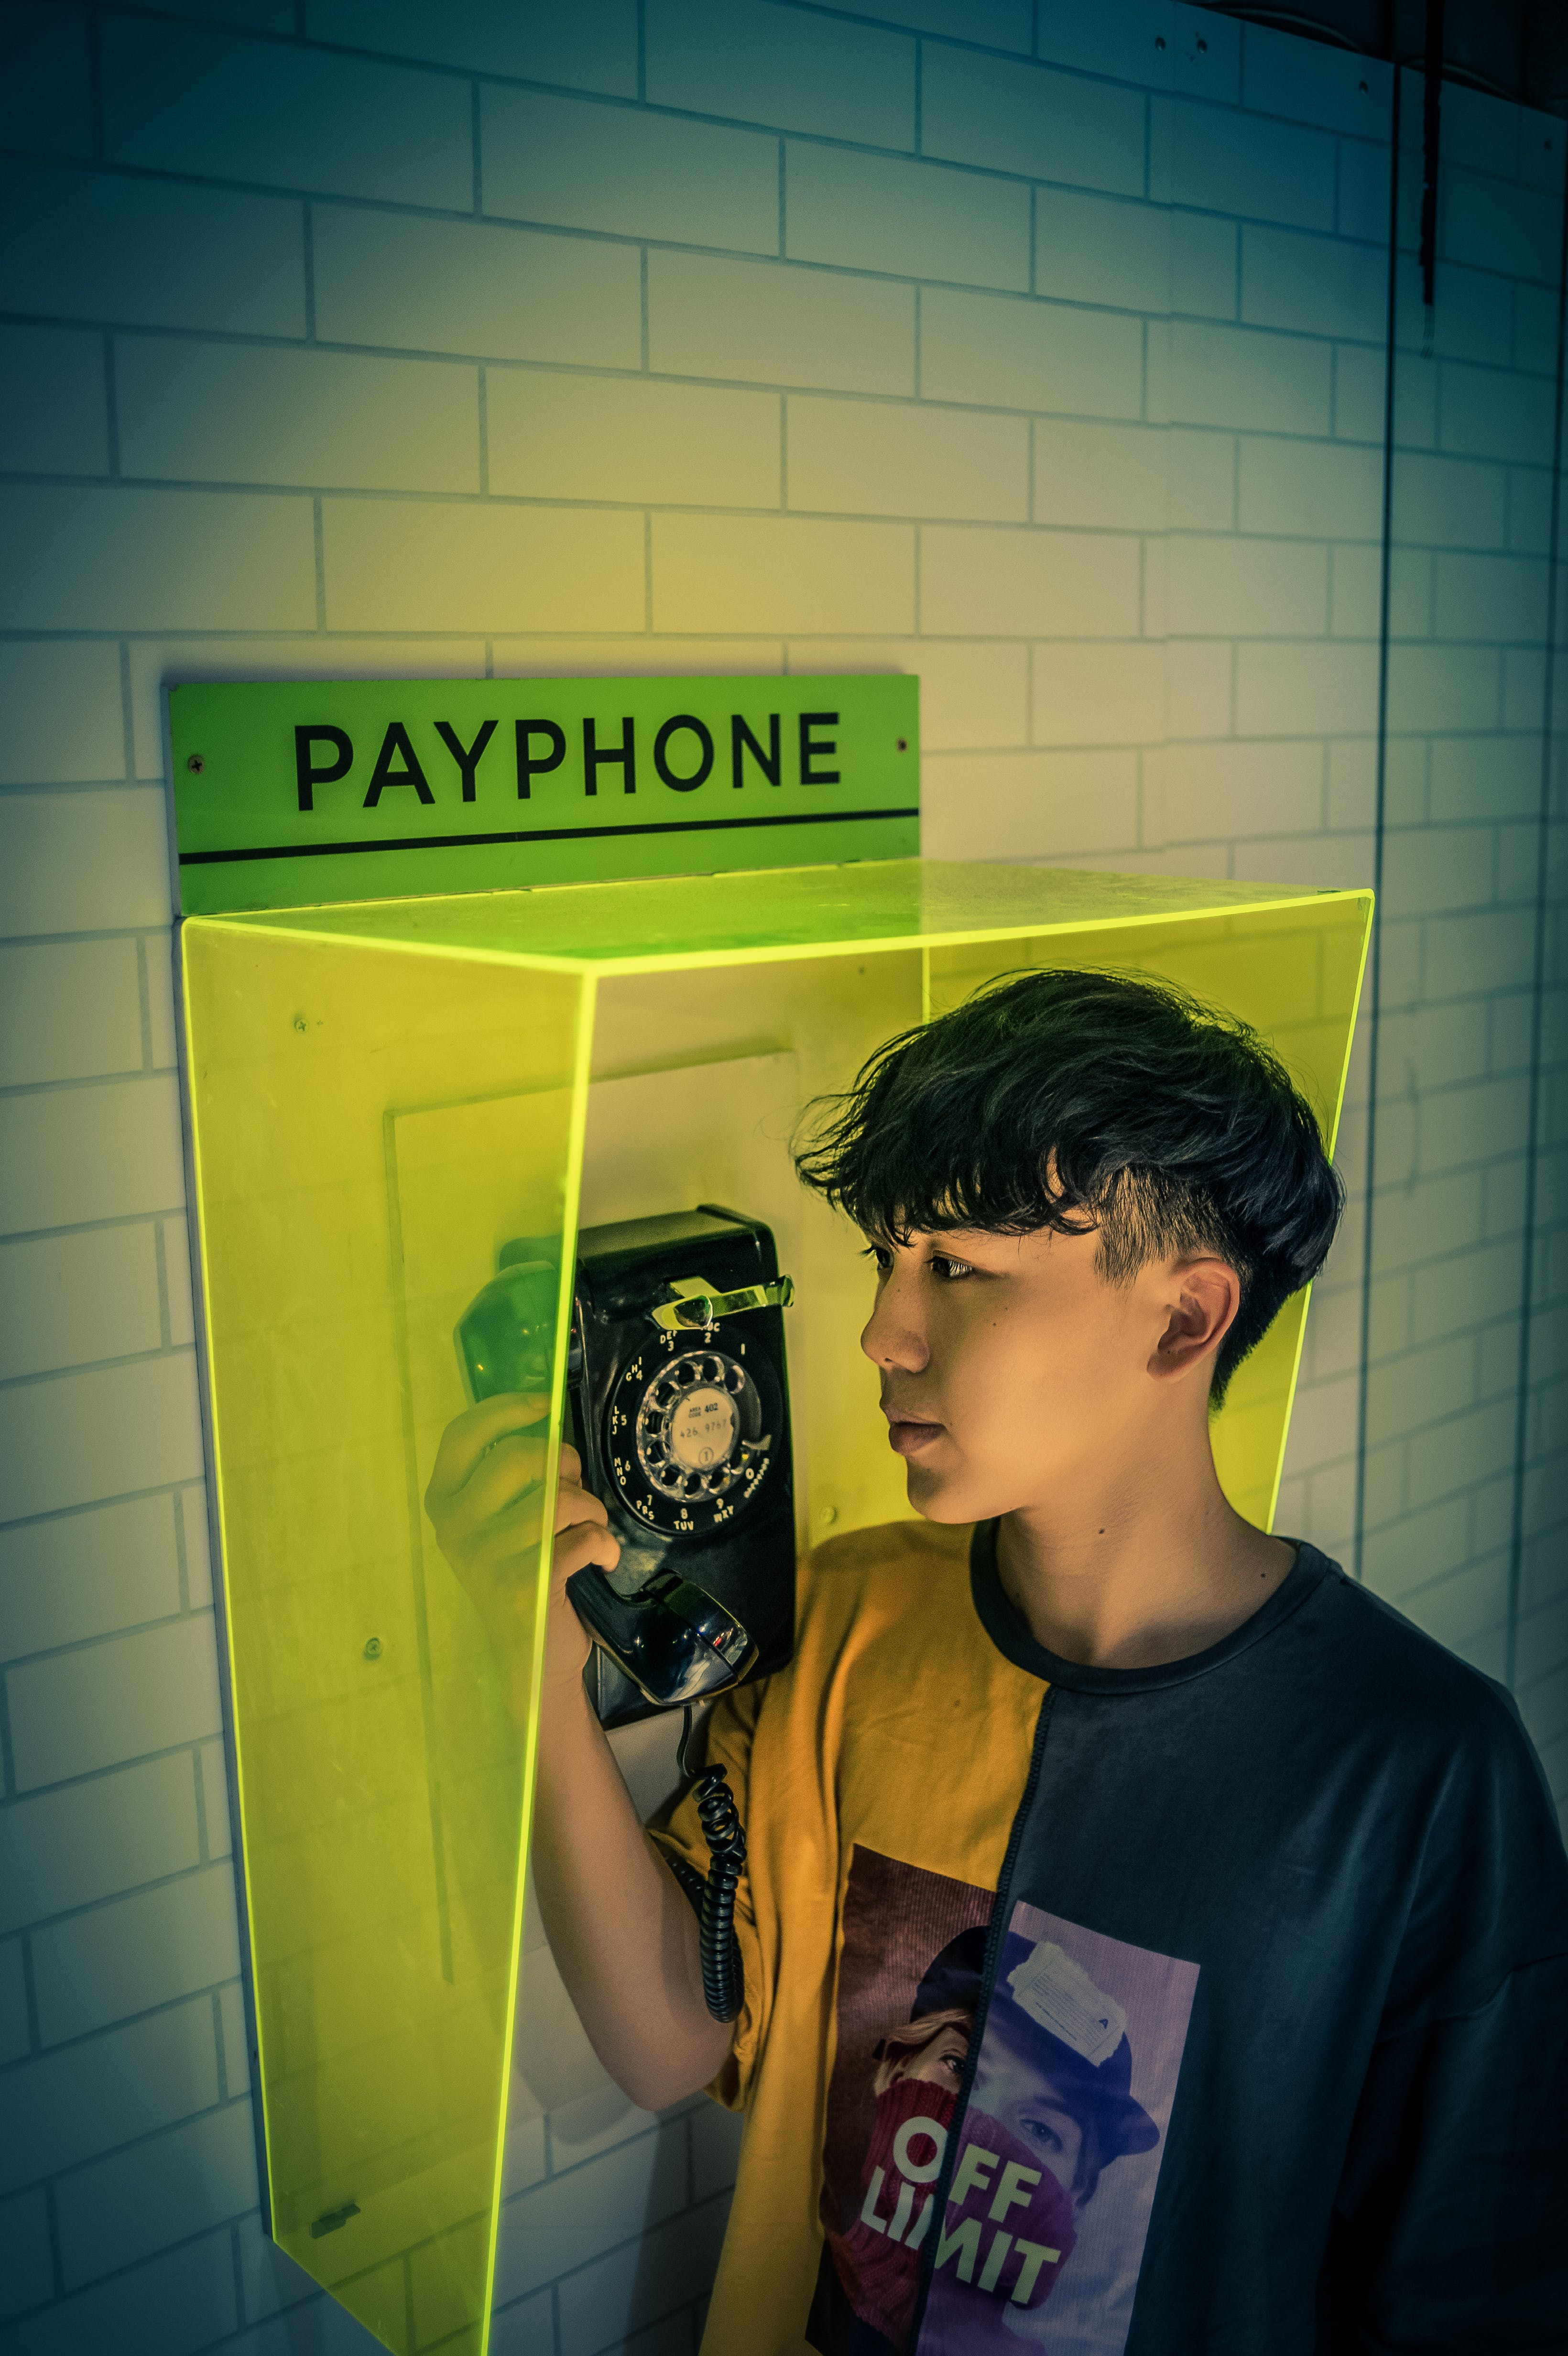 Boy holding Payphone receiver